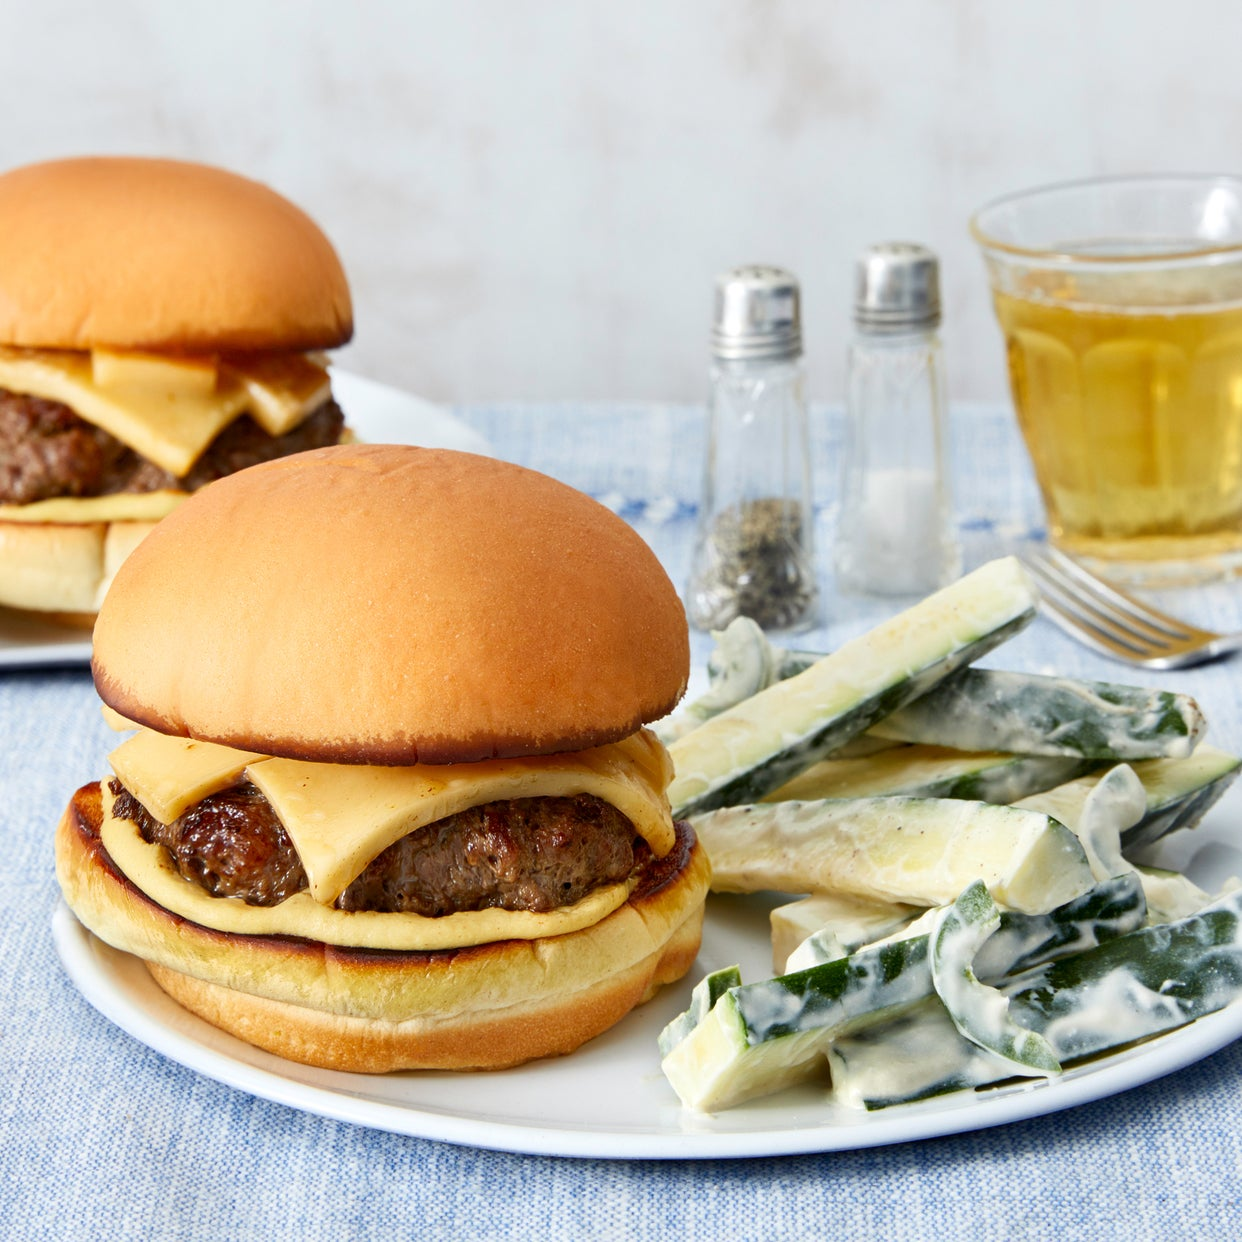 Smoked Gouda Cheeseburgers with Spicy Zucchini Slaw